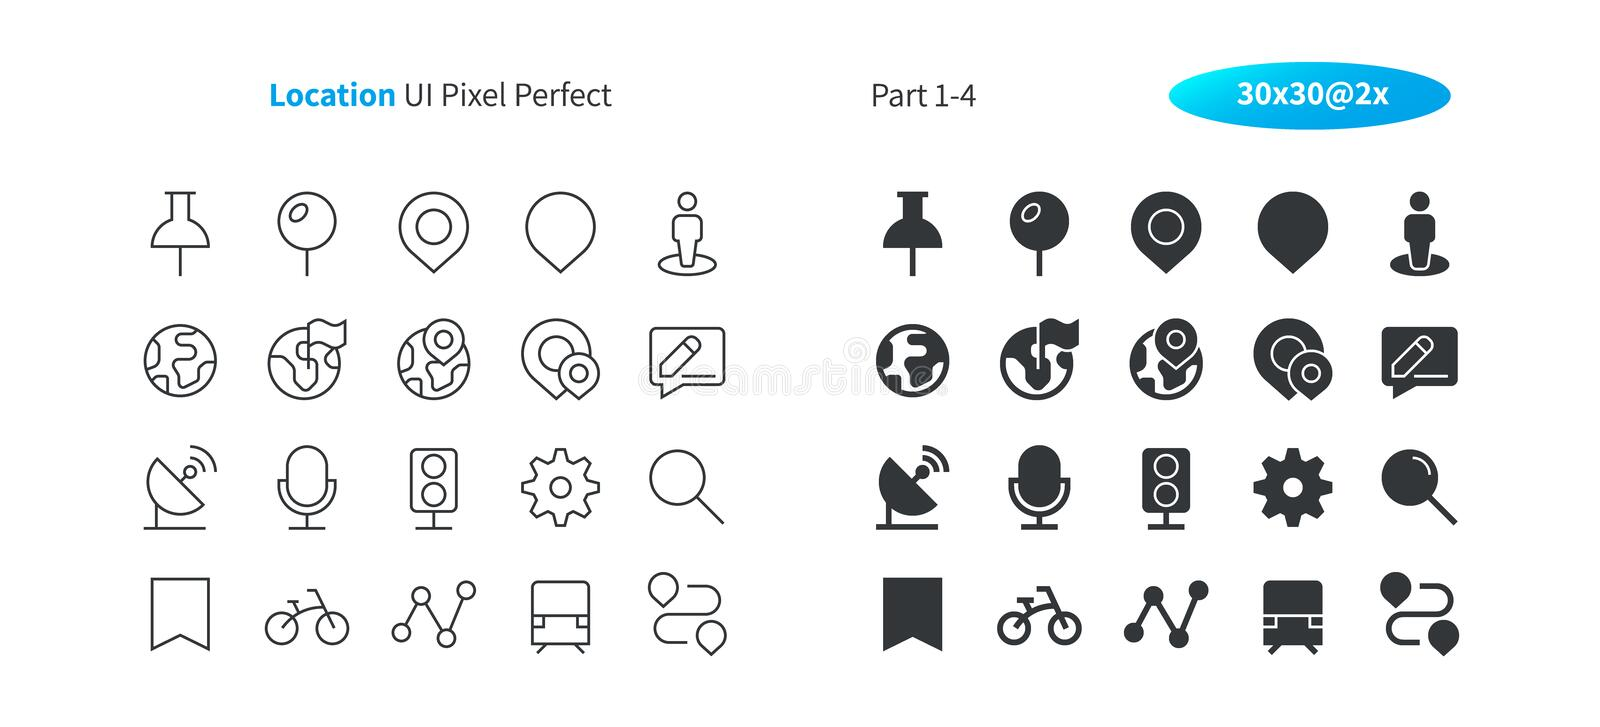 Location UI Pixel Perfect Well-crafted Vector Thin Line And Solid Icons 30 2x Grid for Web Graphics and Apps. stock illustration